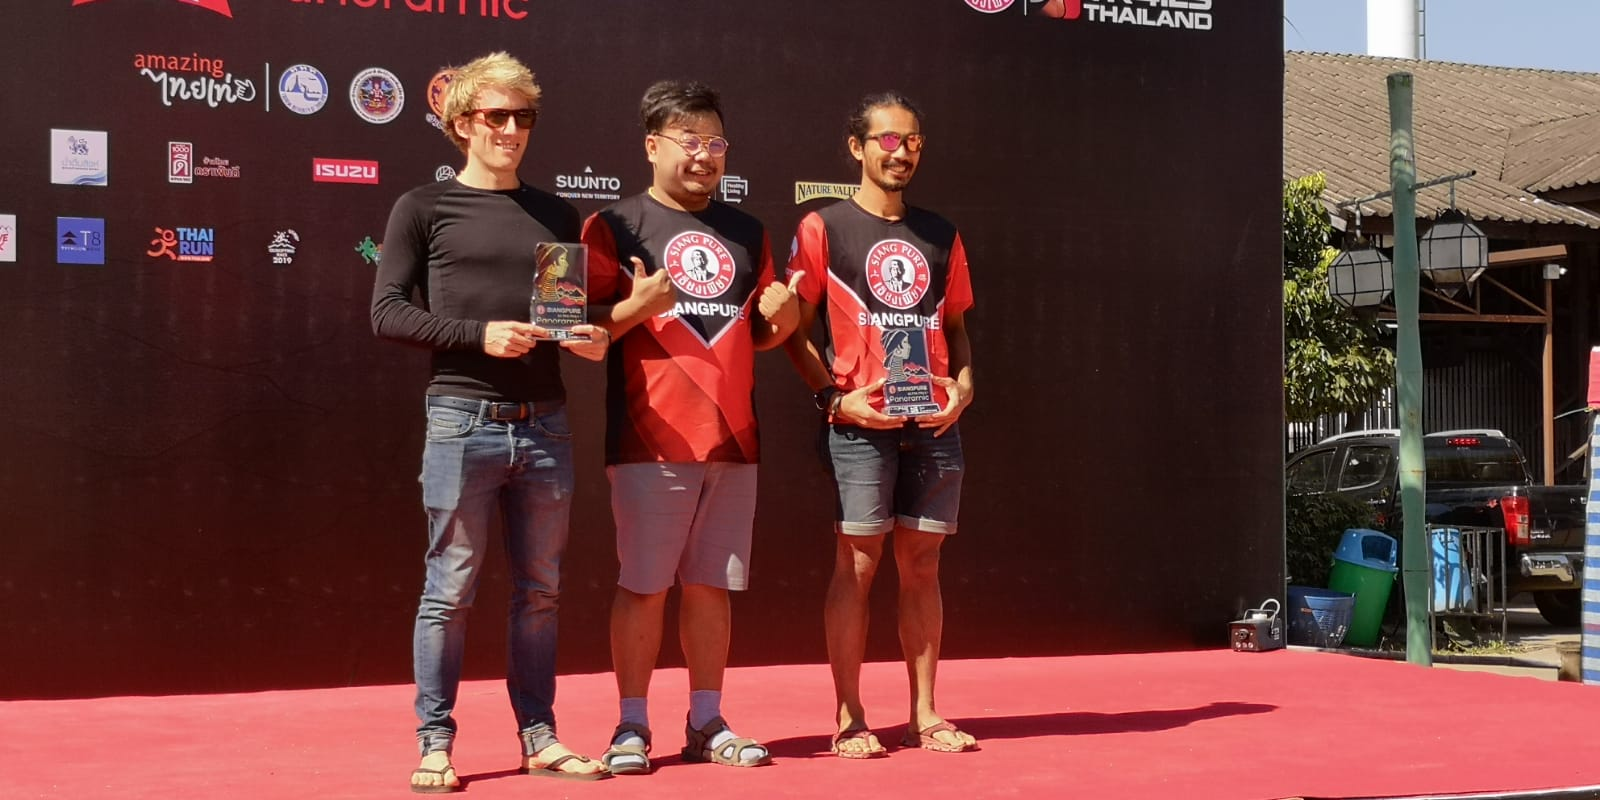 Receiving The Trophy With Suki in 2nd Place